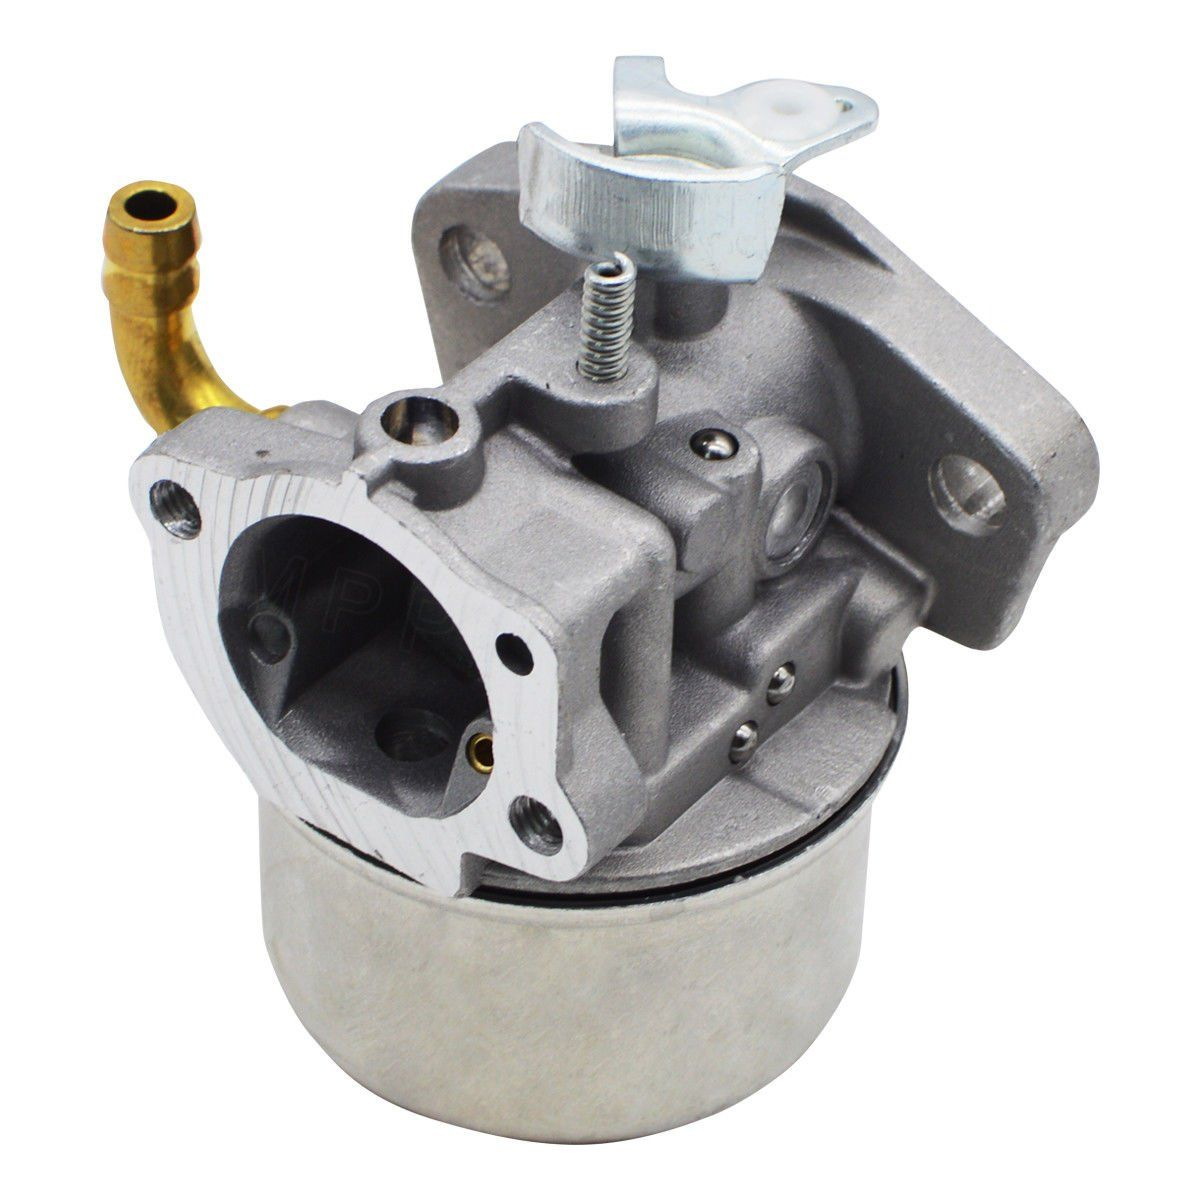 Podoy 696981 Carburetor For Briggs Stratton 697354 790290 698860 Tuneup Kit With Fuel Shutoff Valve Lawn Mower Replac Craftsman Tiller Landscaping Tools Tiller